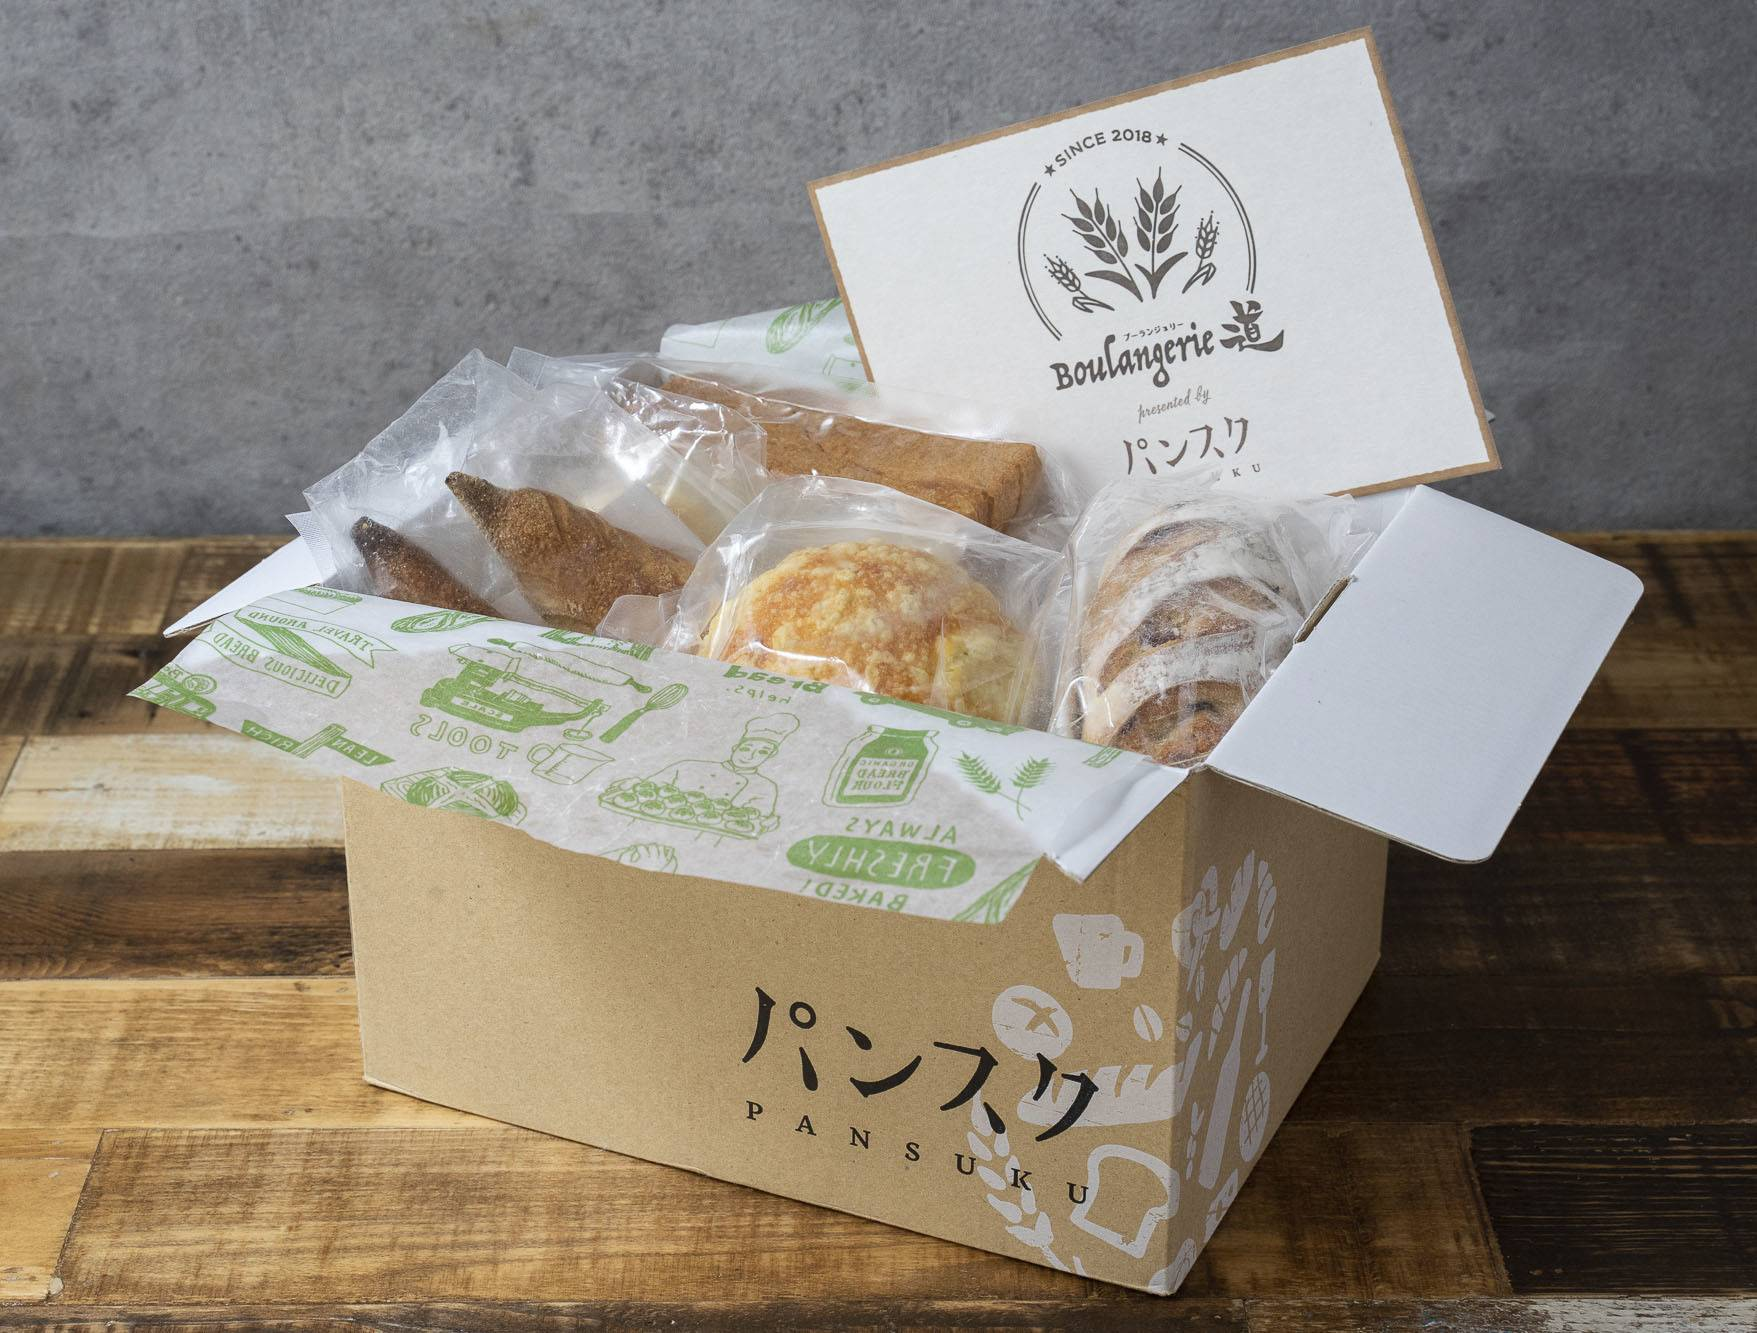 Yuabread has developed a freezing technique to preserve the taste and flavor of freshly baked bread for delivery to both corporate and individual clients. | YUABREAD INC. / VIA KYODO